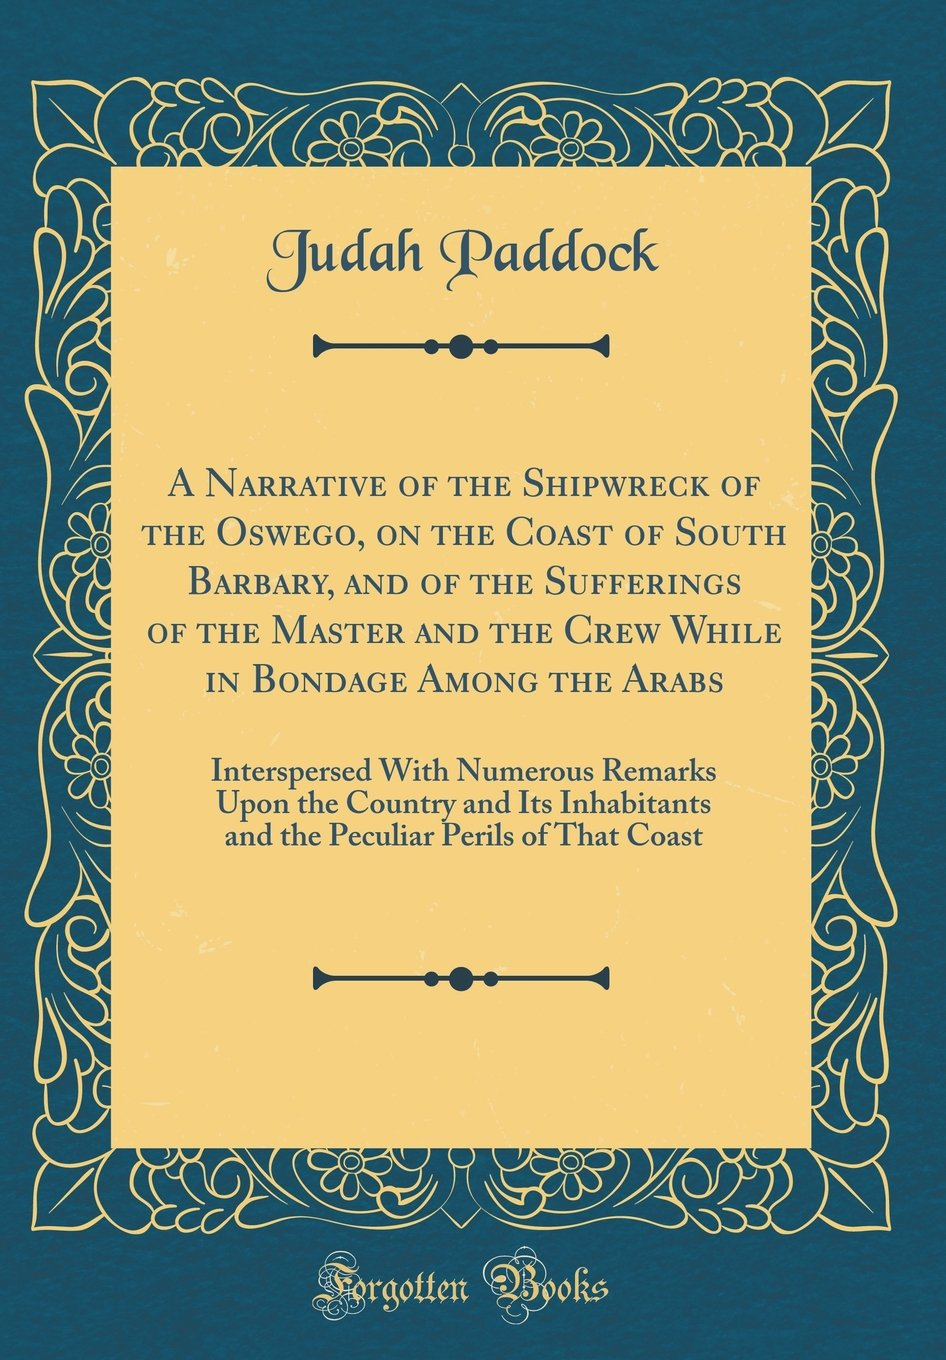 Read Online A Narrative of the Shipwreck of the Oswego, on the Coast of South Barbary, and of the Sufferings of the Master and the Crew While in Bondage Among the ... and Its Inhabitants and the Peculiar Perils o pdf